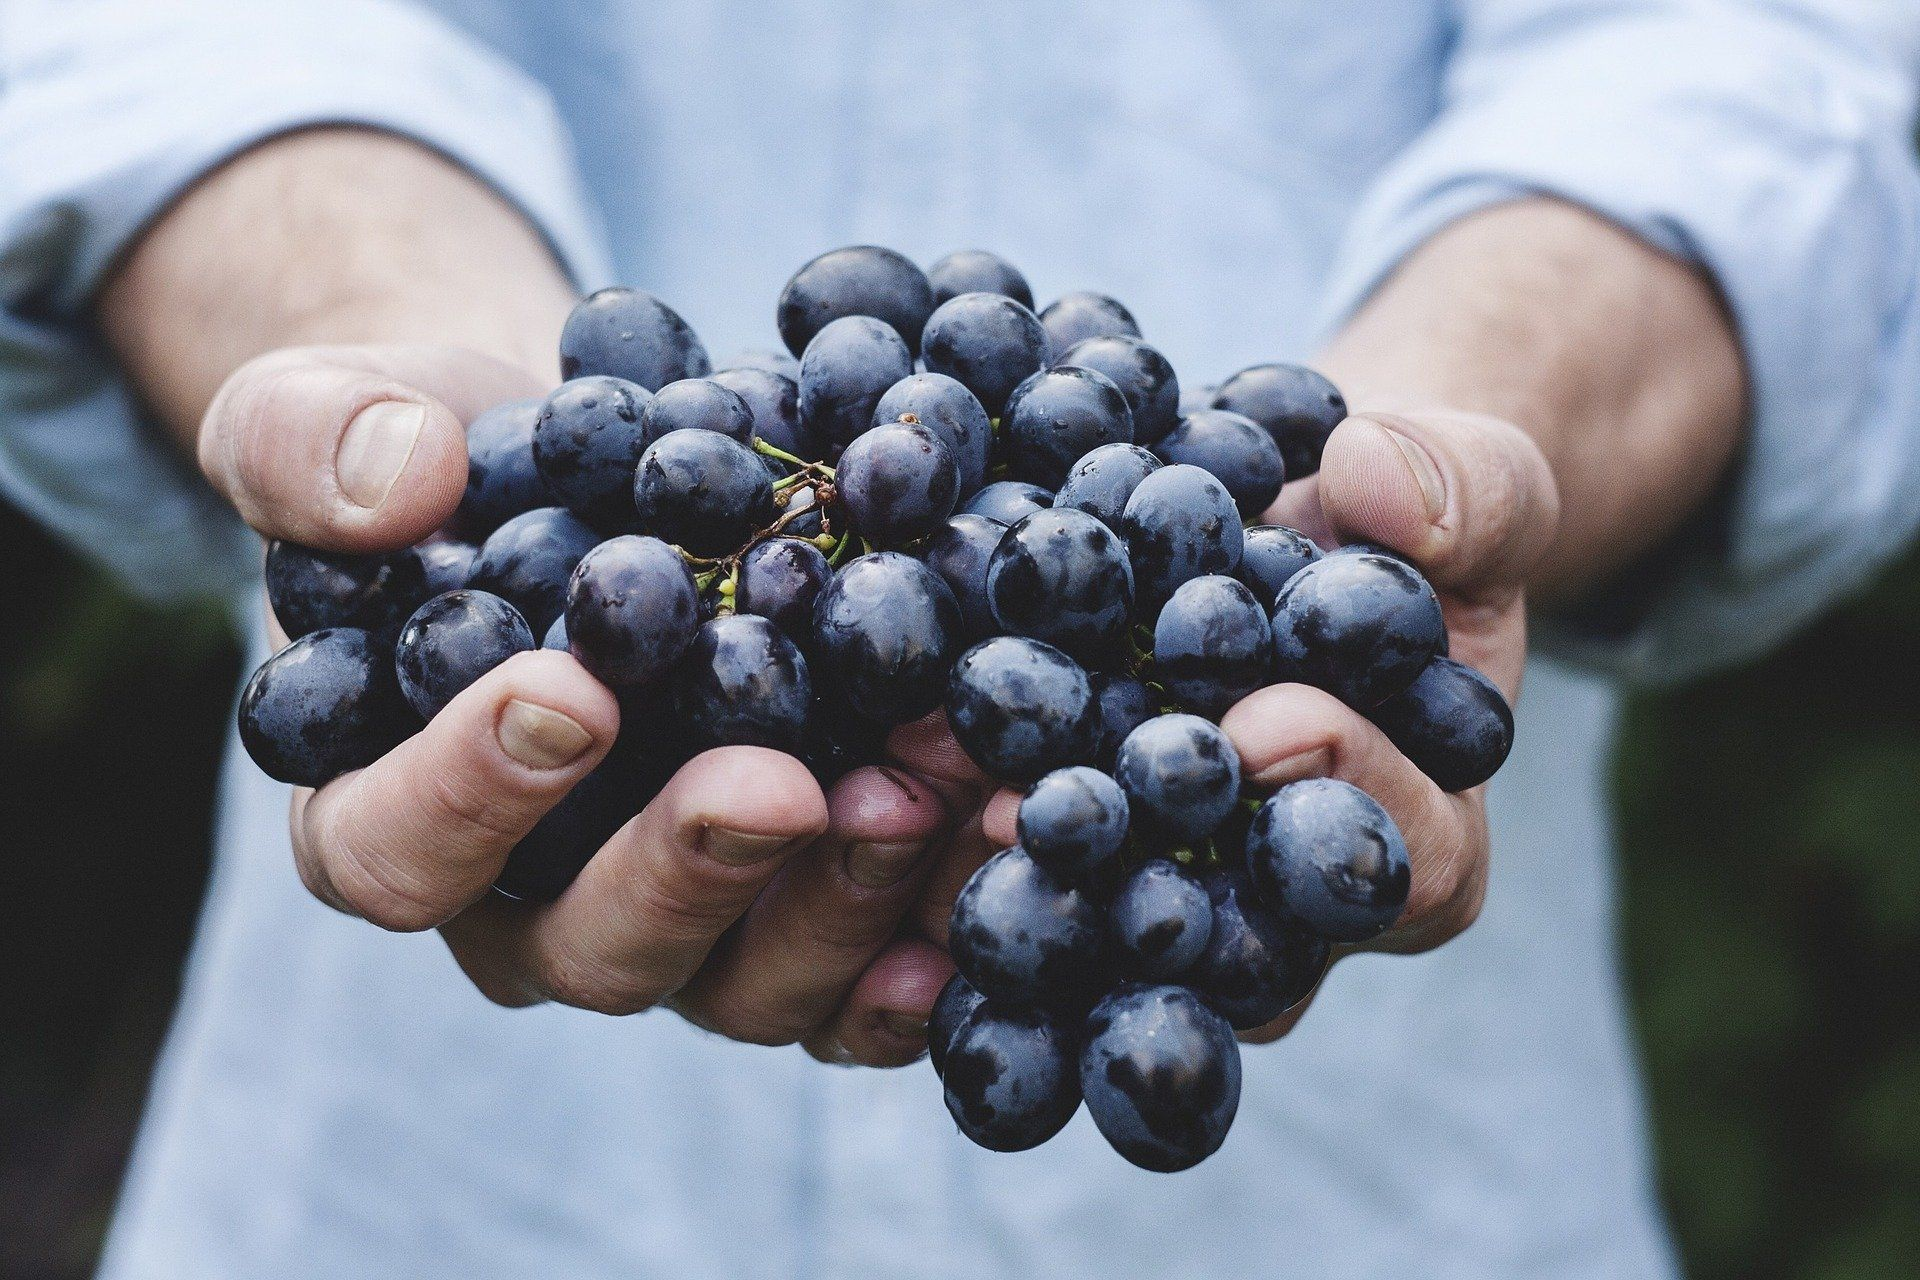 Man holding a bunch of grapes